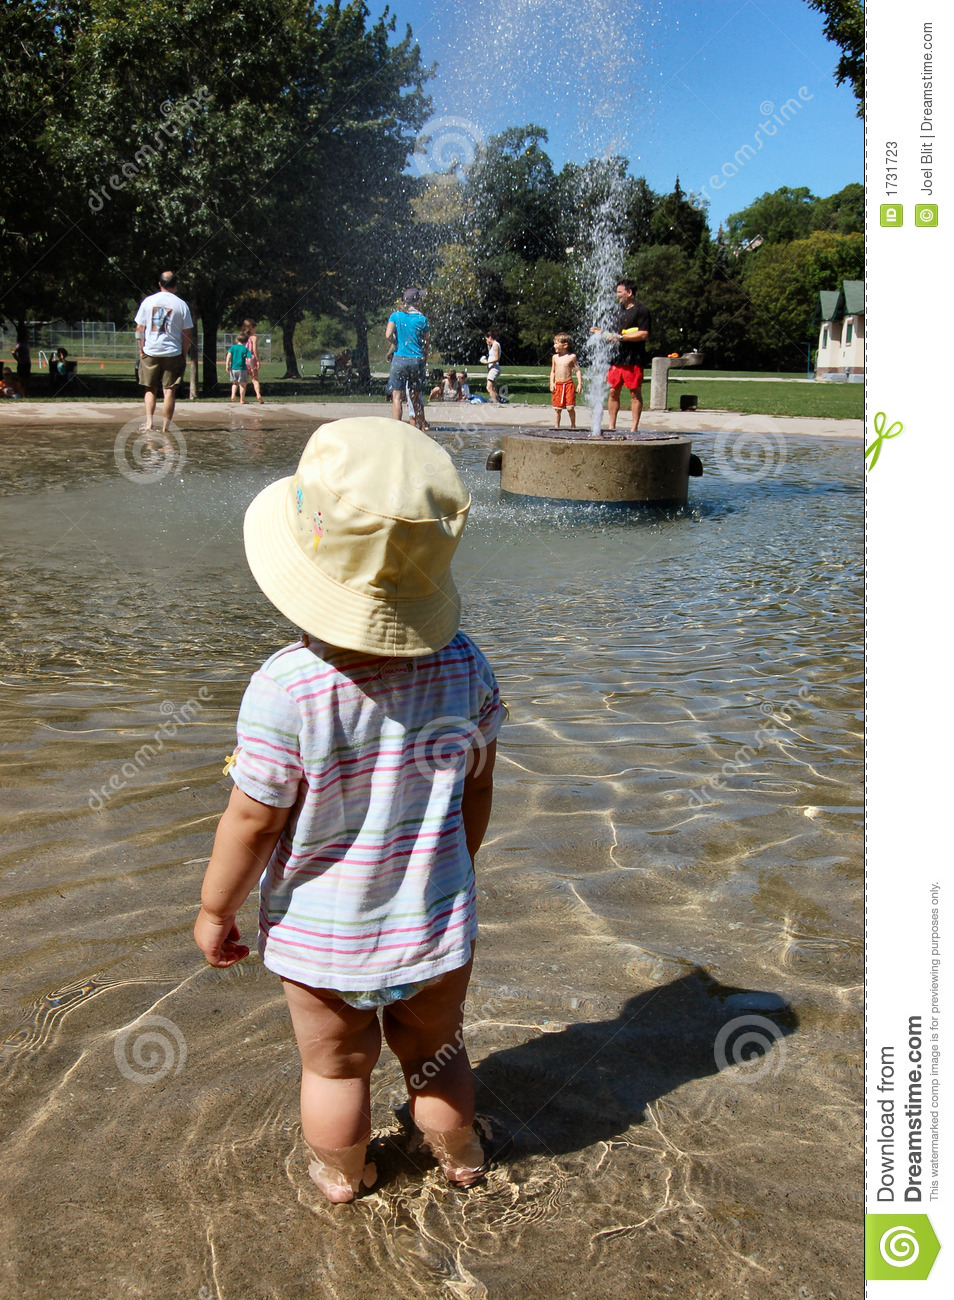 Toddler in wading pool